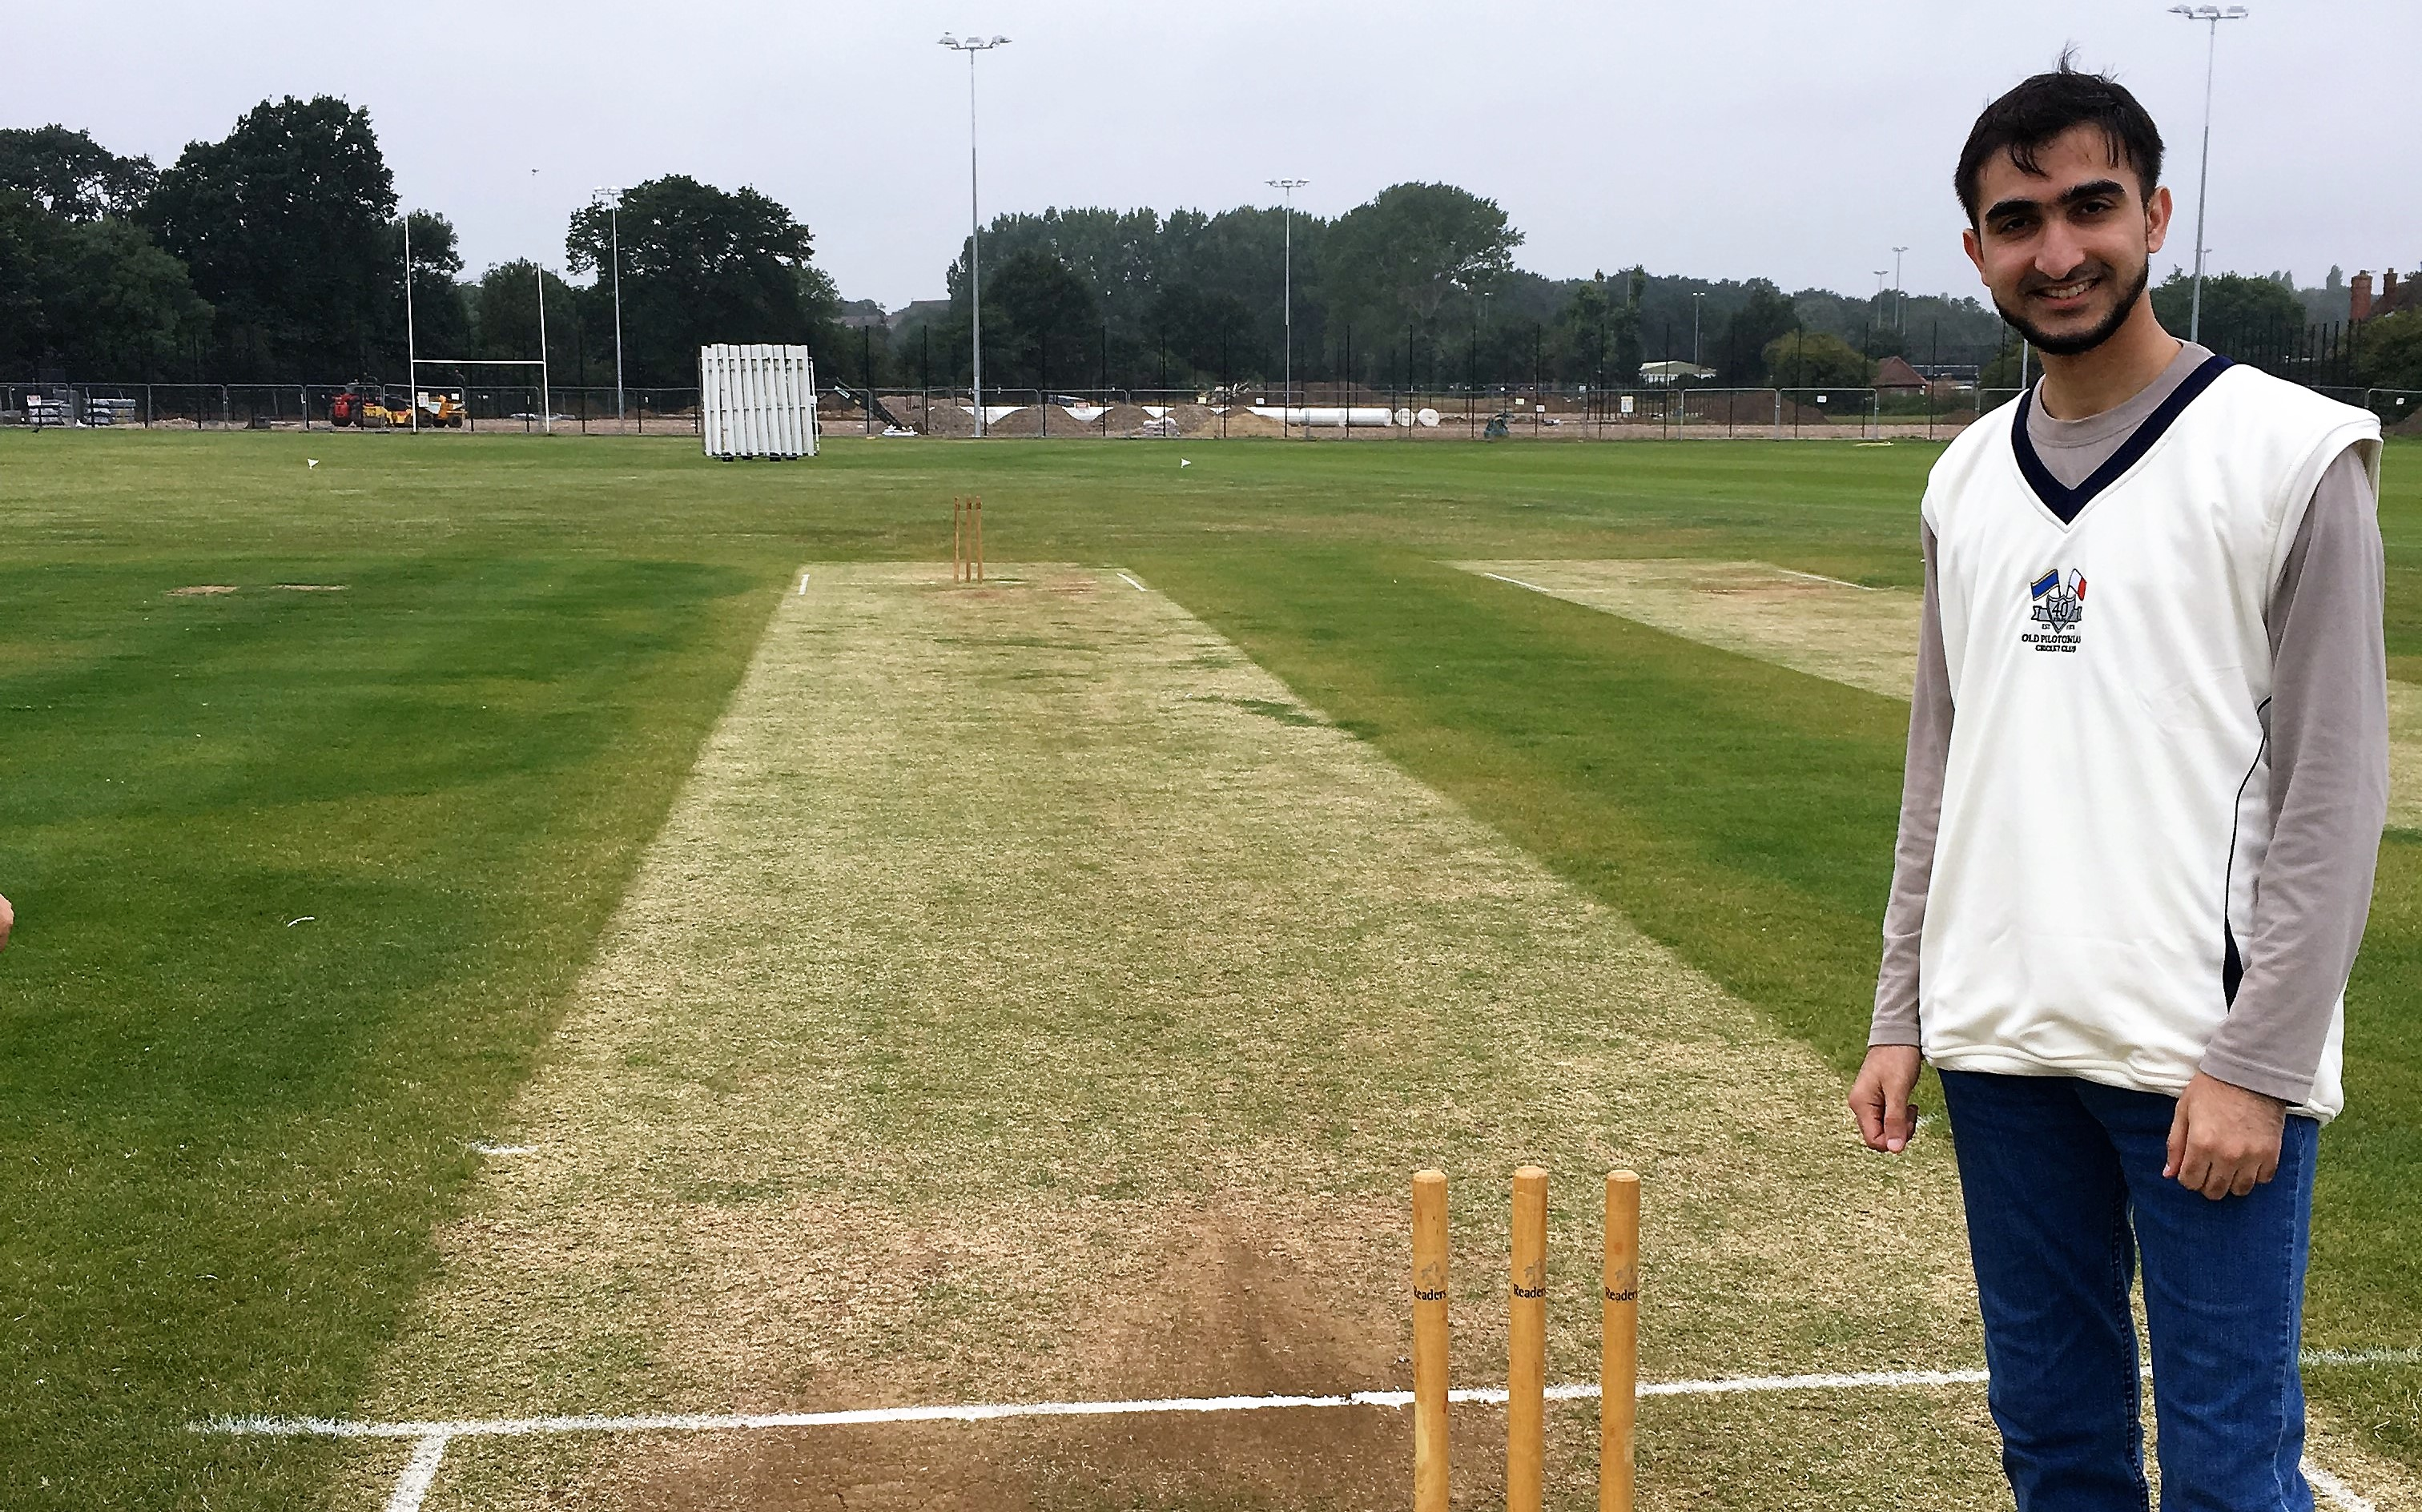 Muhammad Abrar, a part-time cricketer